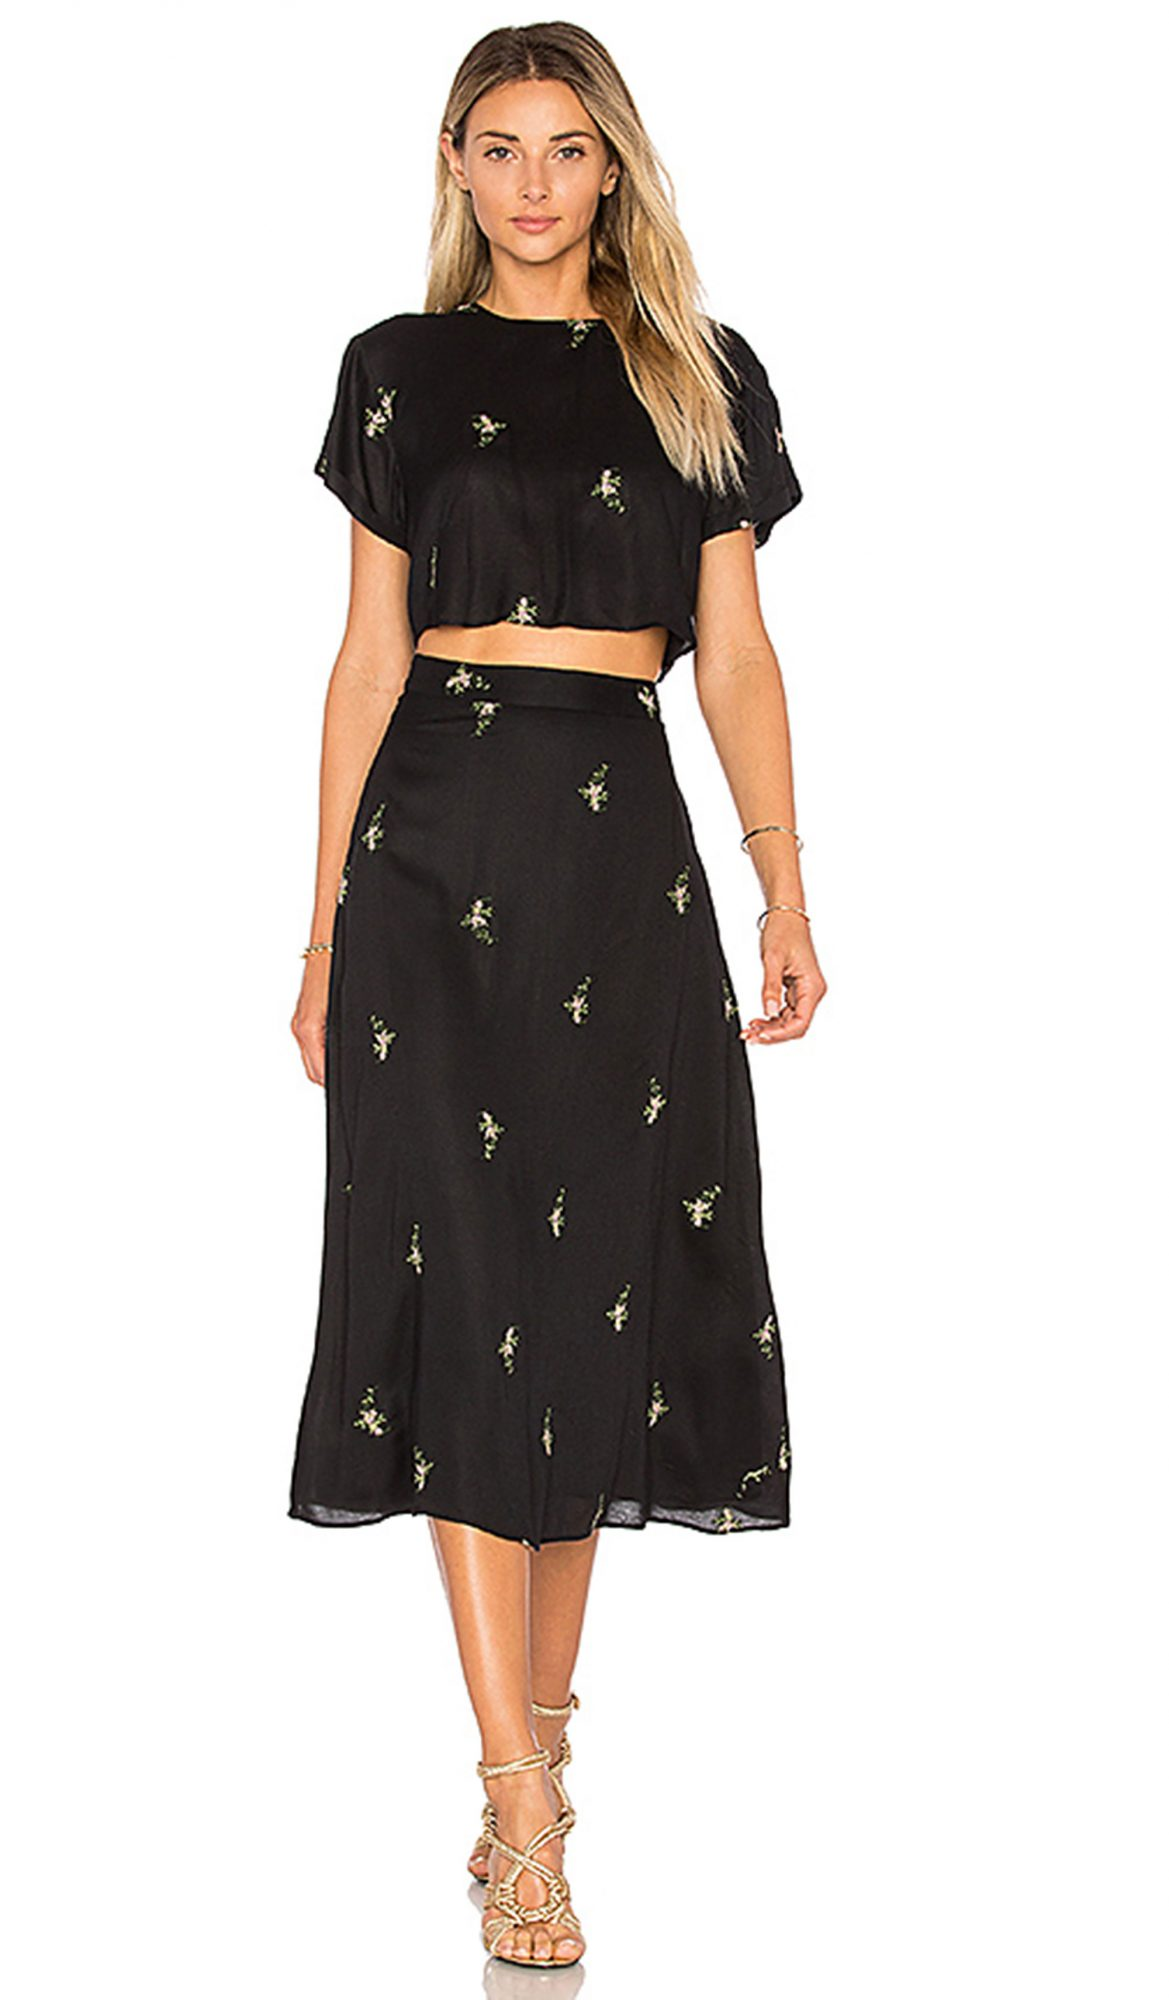 Shopping: Steal Sienna Miller's Boho Style with These 11 Looks